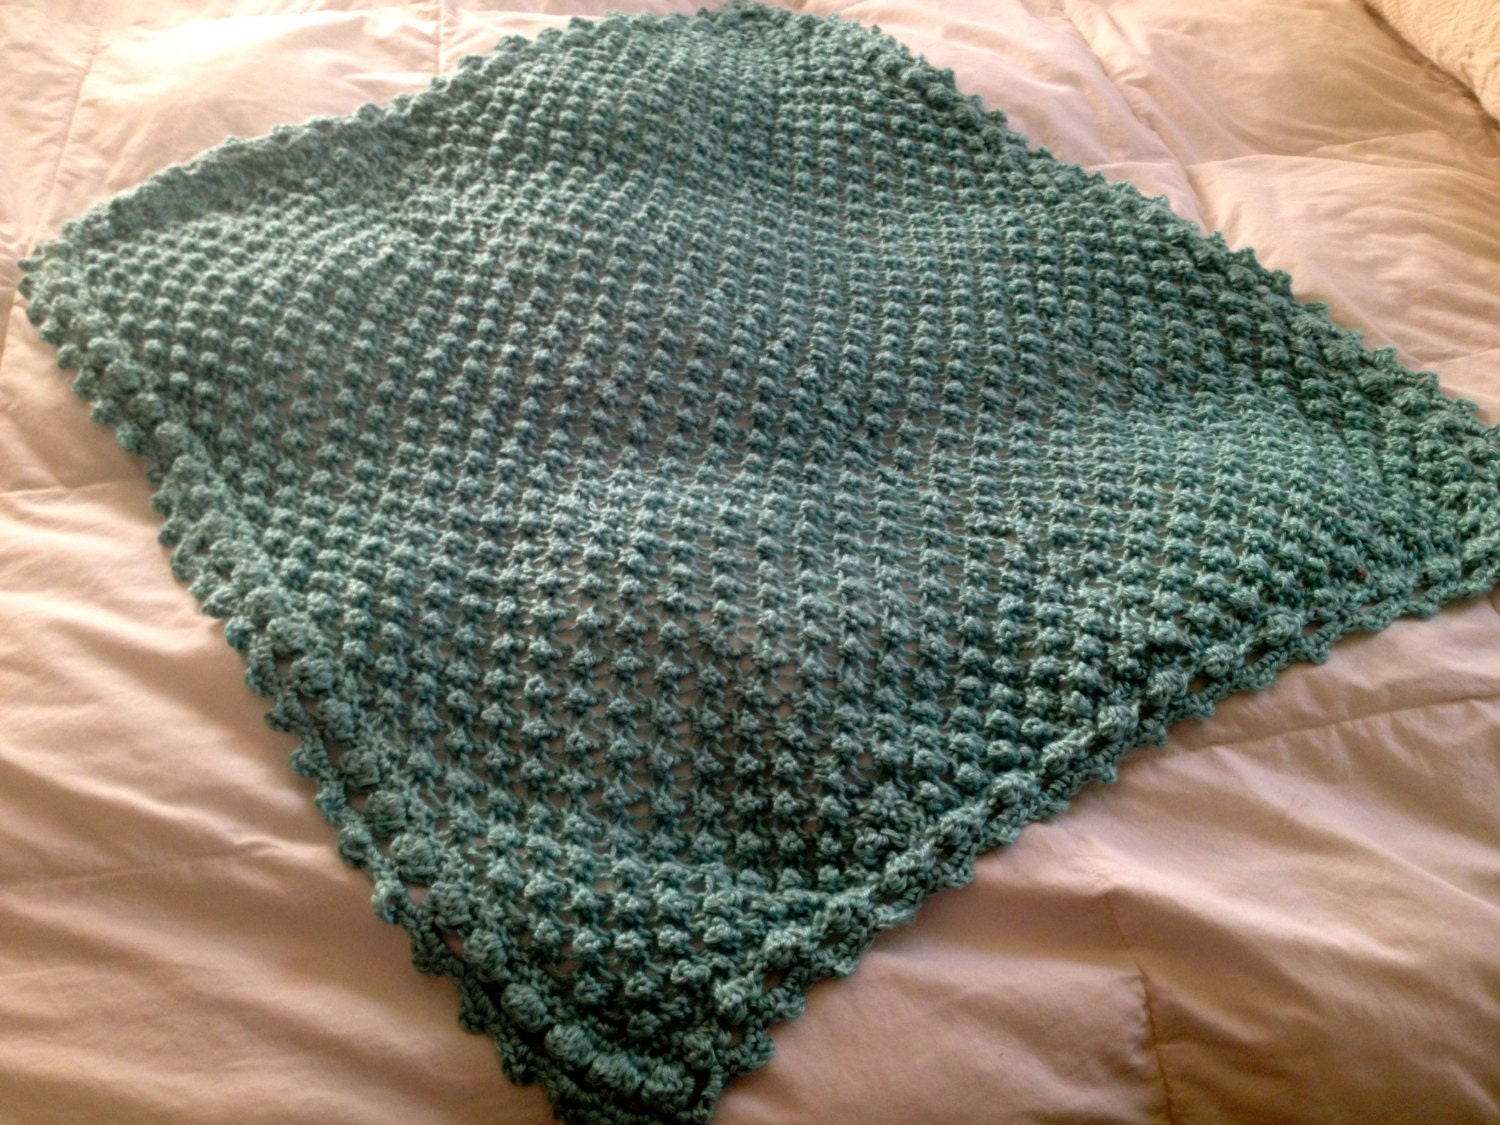 Knit Popcorn Stitch Baby Blanket : Hand Knit Baby Blanket in Popcorn stitch pattern with